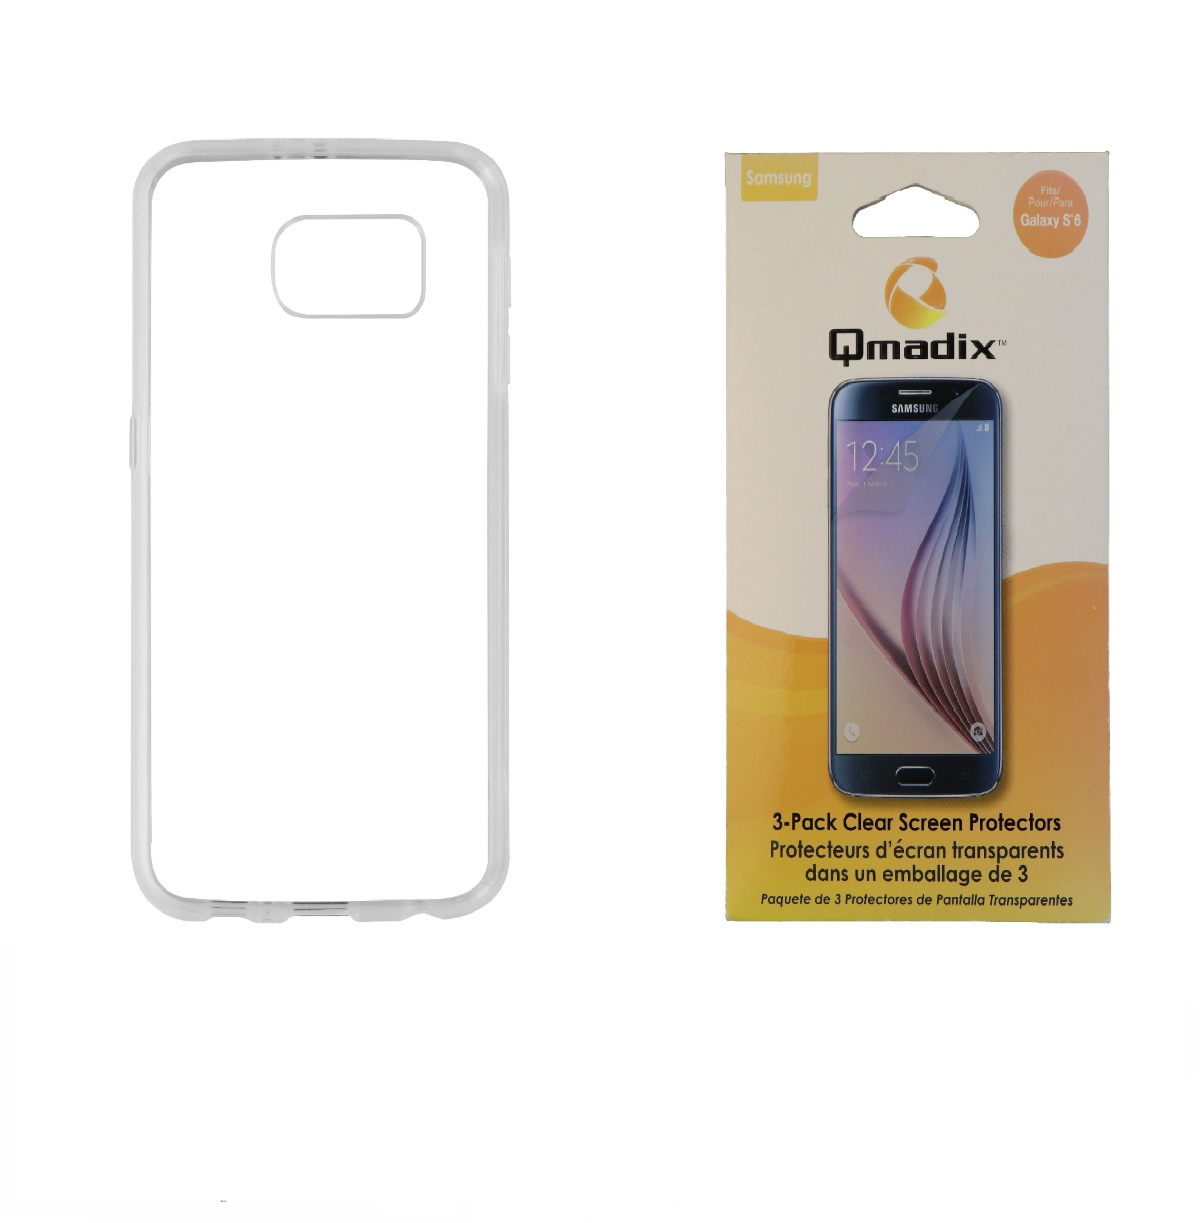 Insignia Clear Case + Qmadix Screen Protector 3 Pack for Samsung Galaxy S6